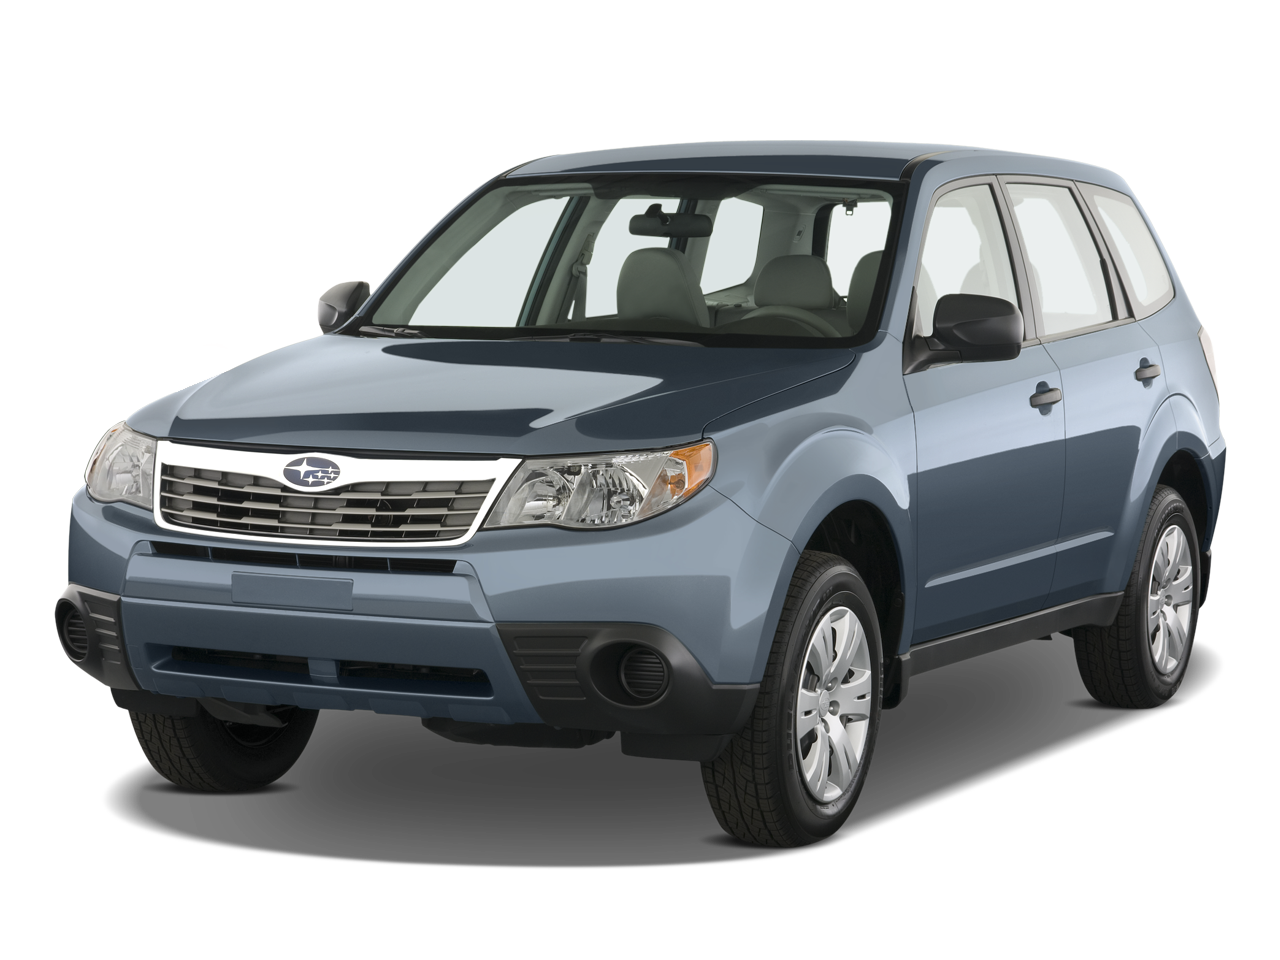 2009 Subaru Forester X Limited 4Dr SUV Navigation System